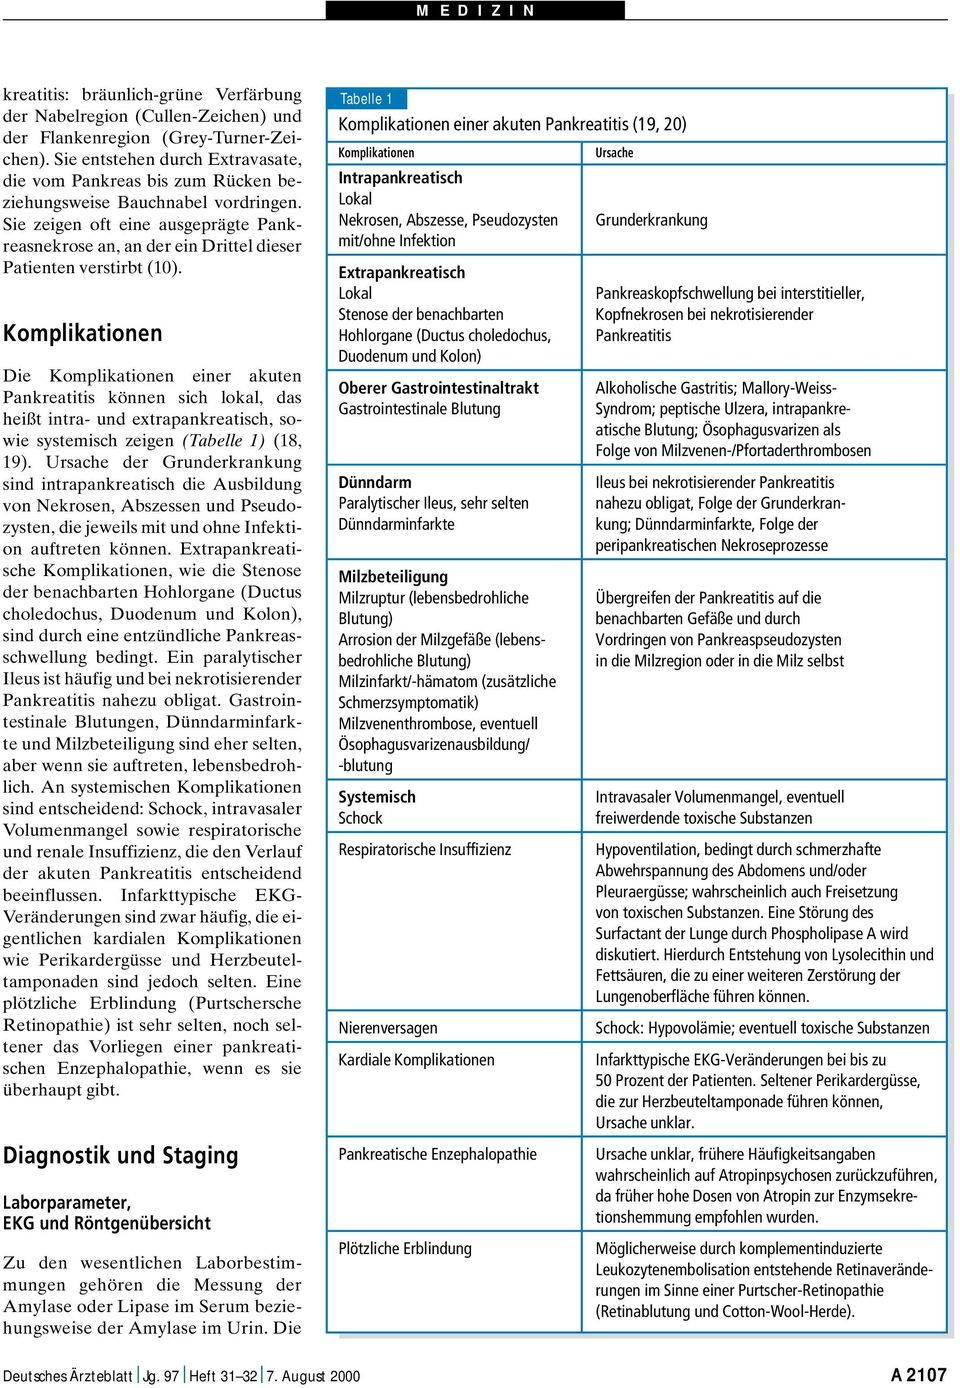 Charmant Visuelle Grundwiederholung Bilder - Entry Level Resume ...